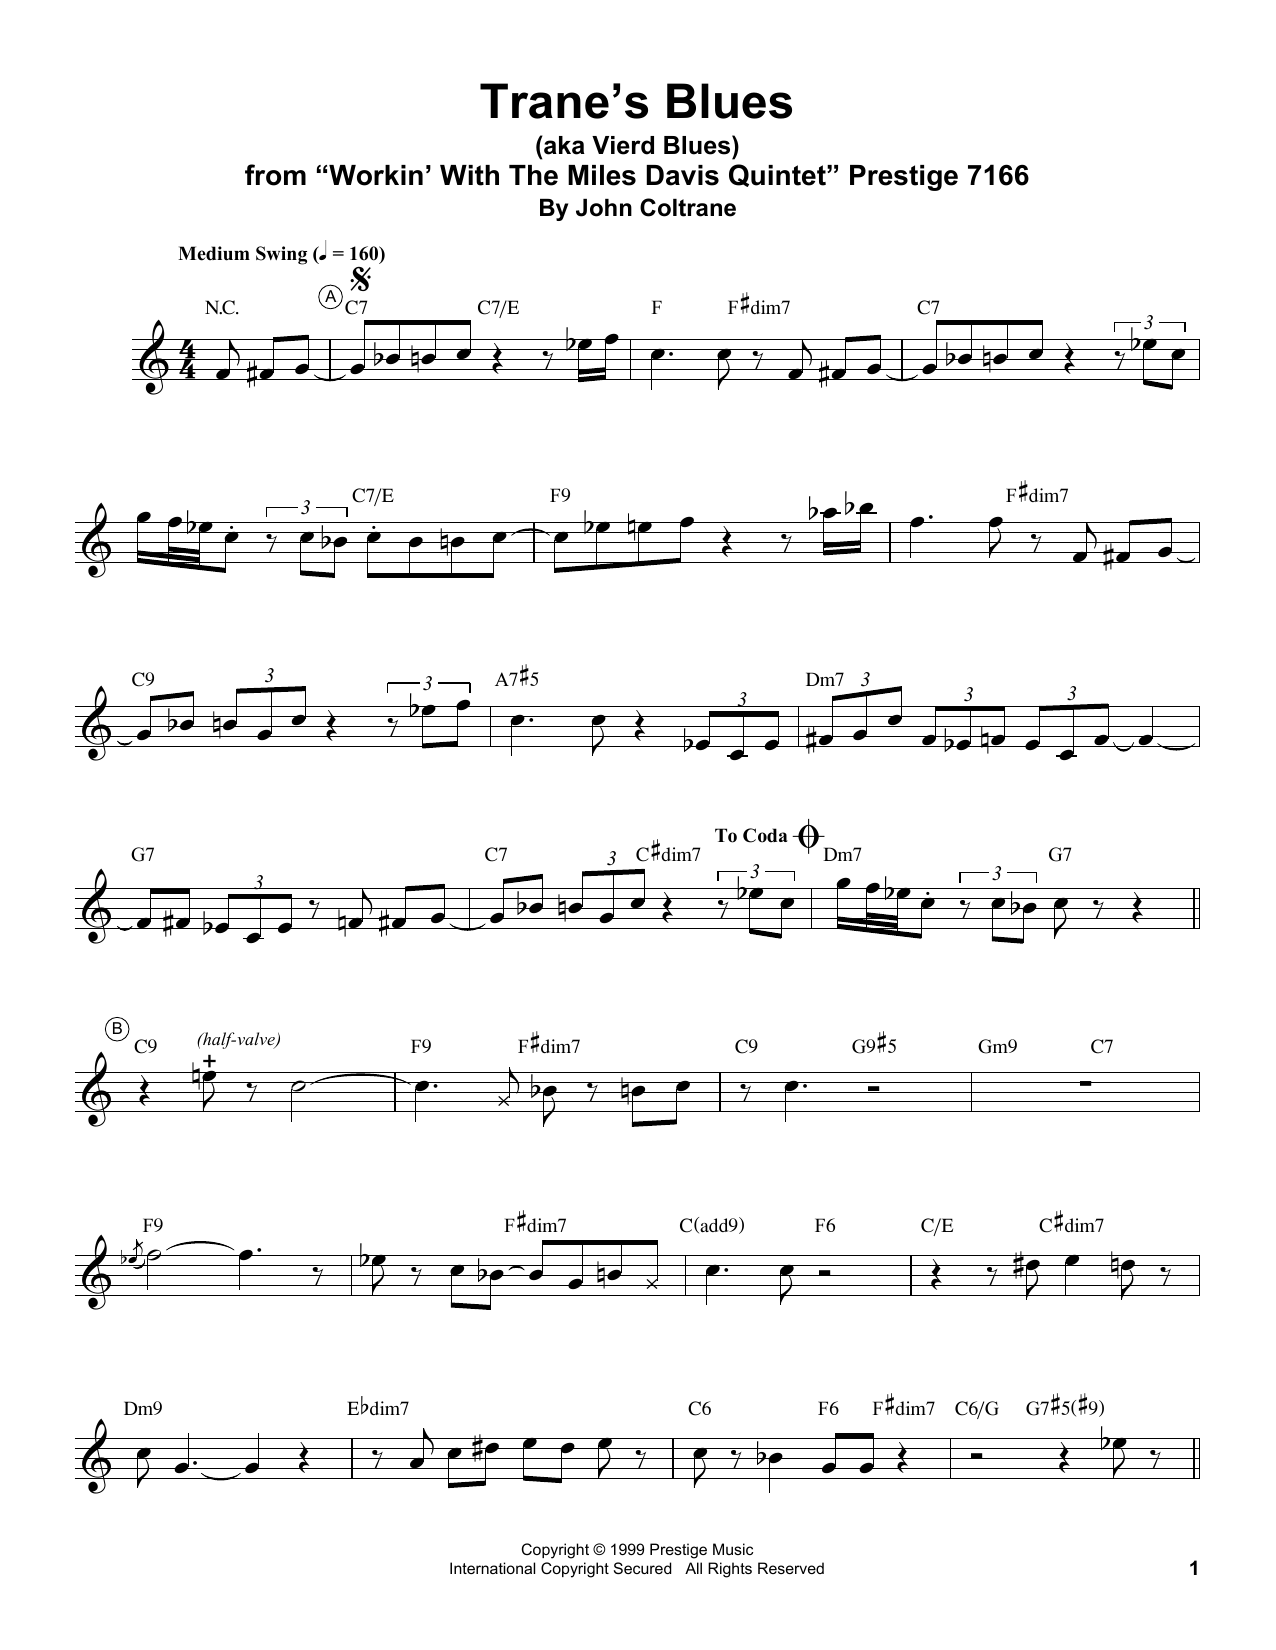 Trane's Blues (Trumpet Transcription) - Print Sheet Music Now